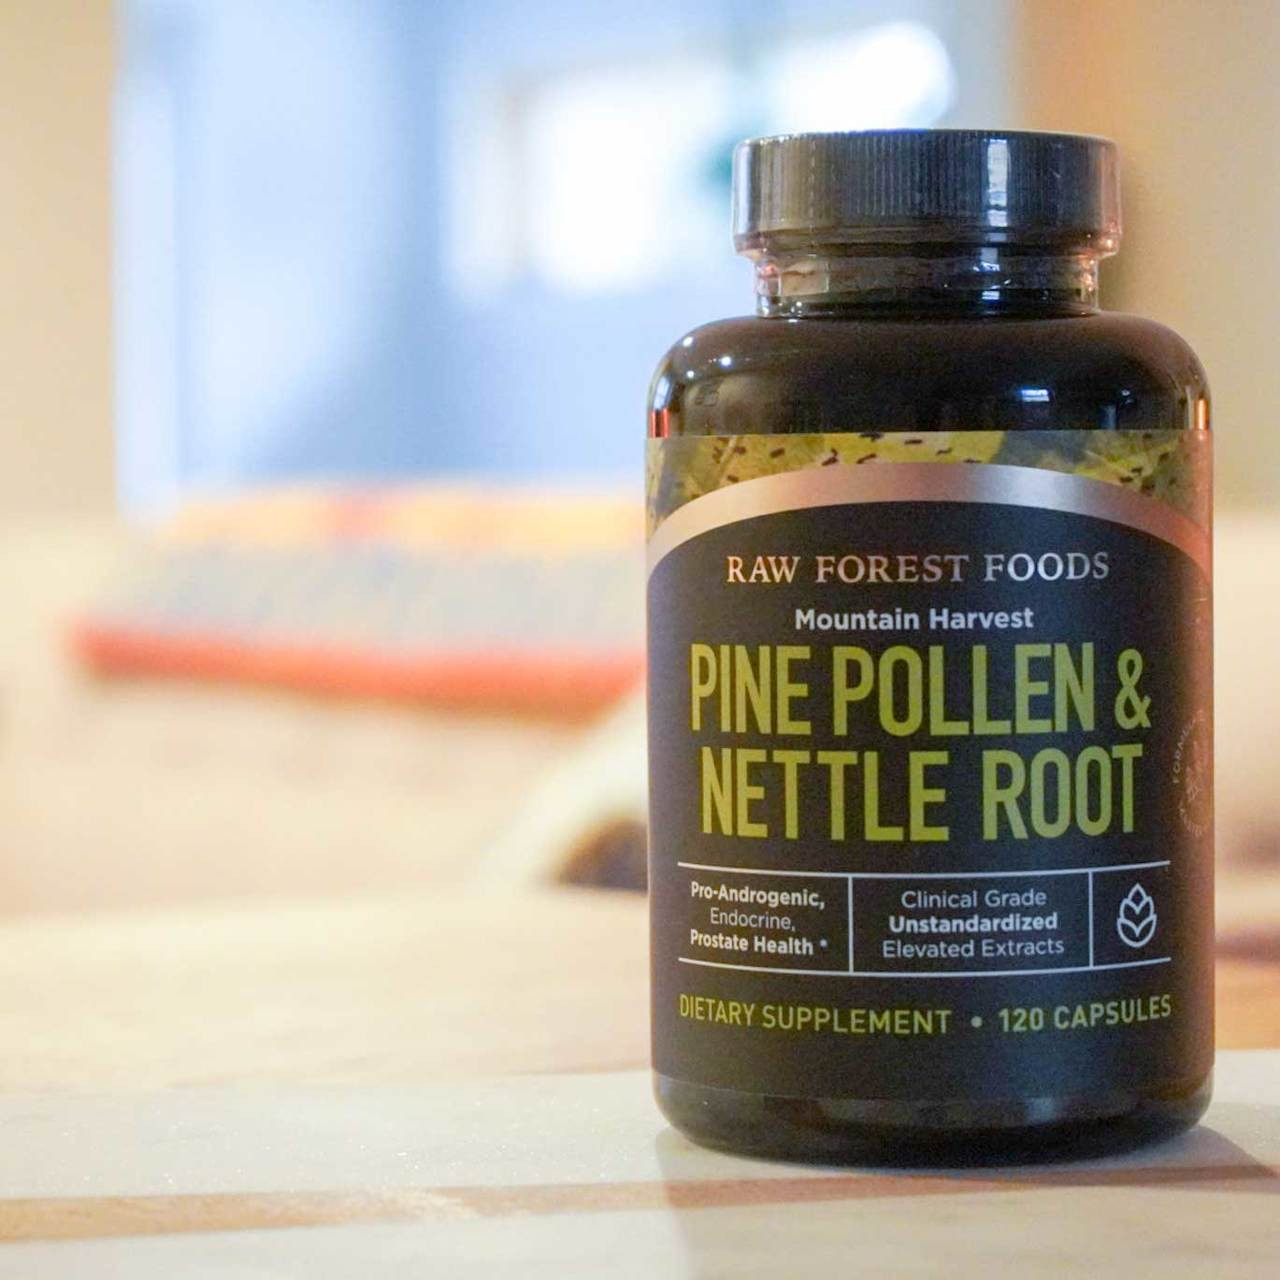 RAW Forest Foods Pine Pollen and Nettle Root Extract Capsules — Full Potency, Full Spectrum, and Unstandardized